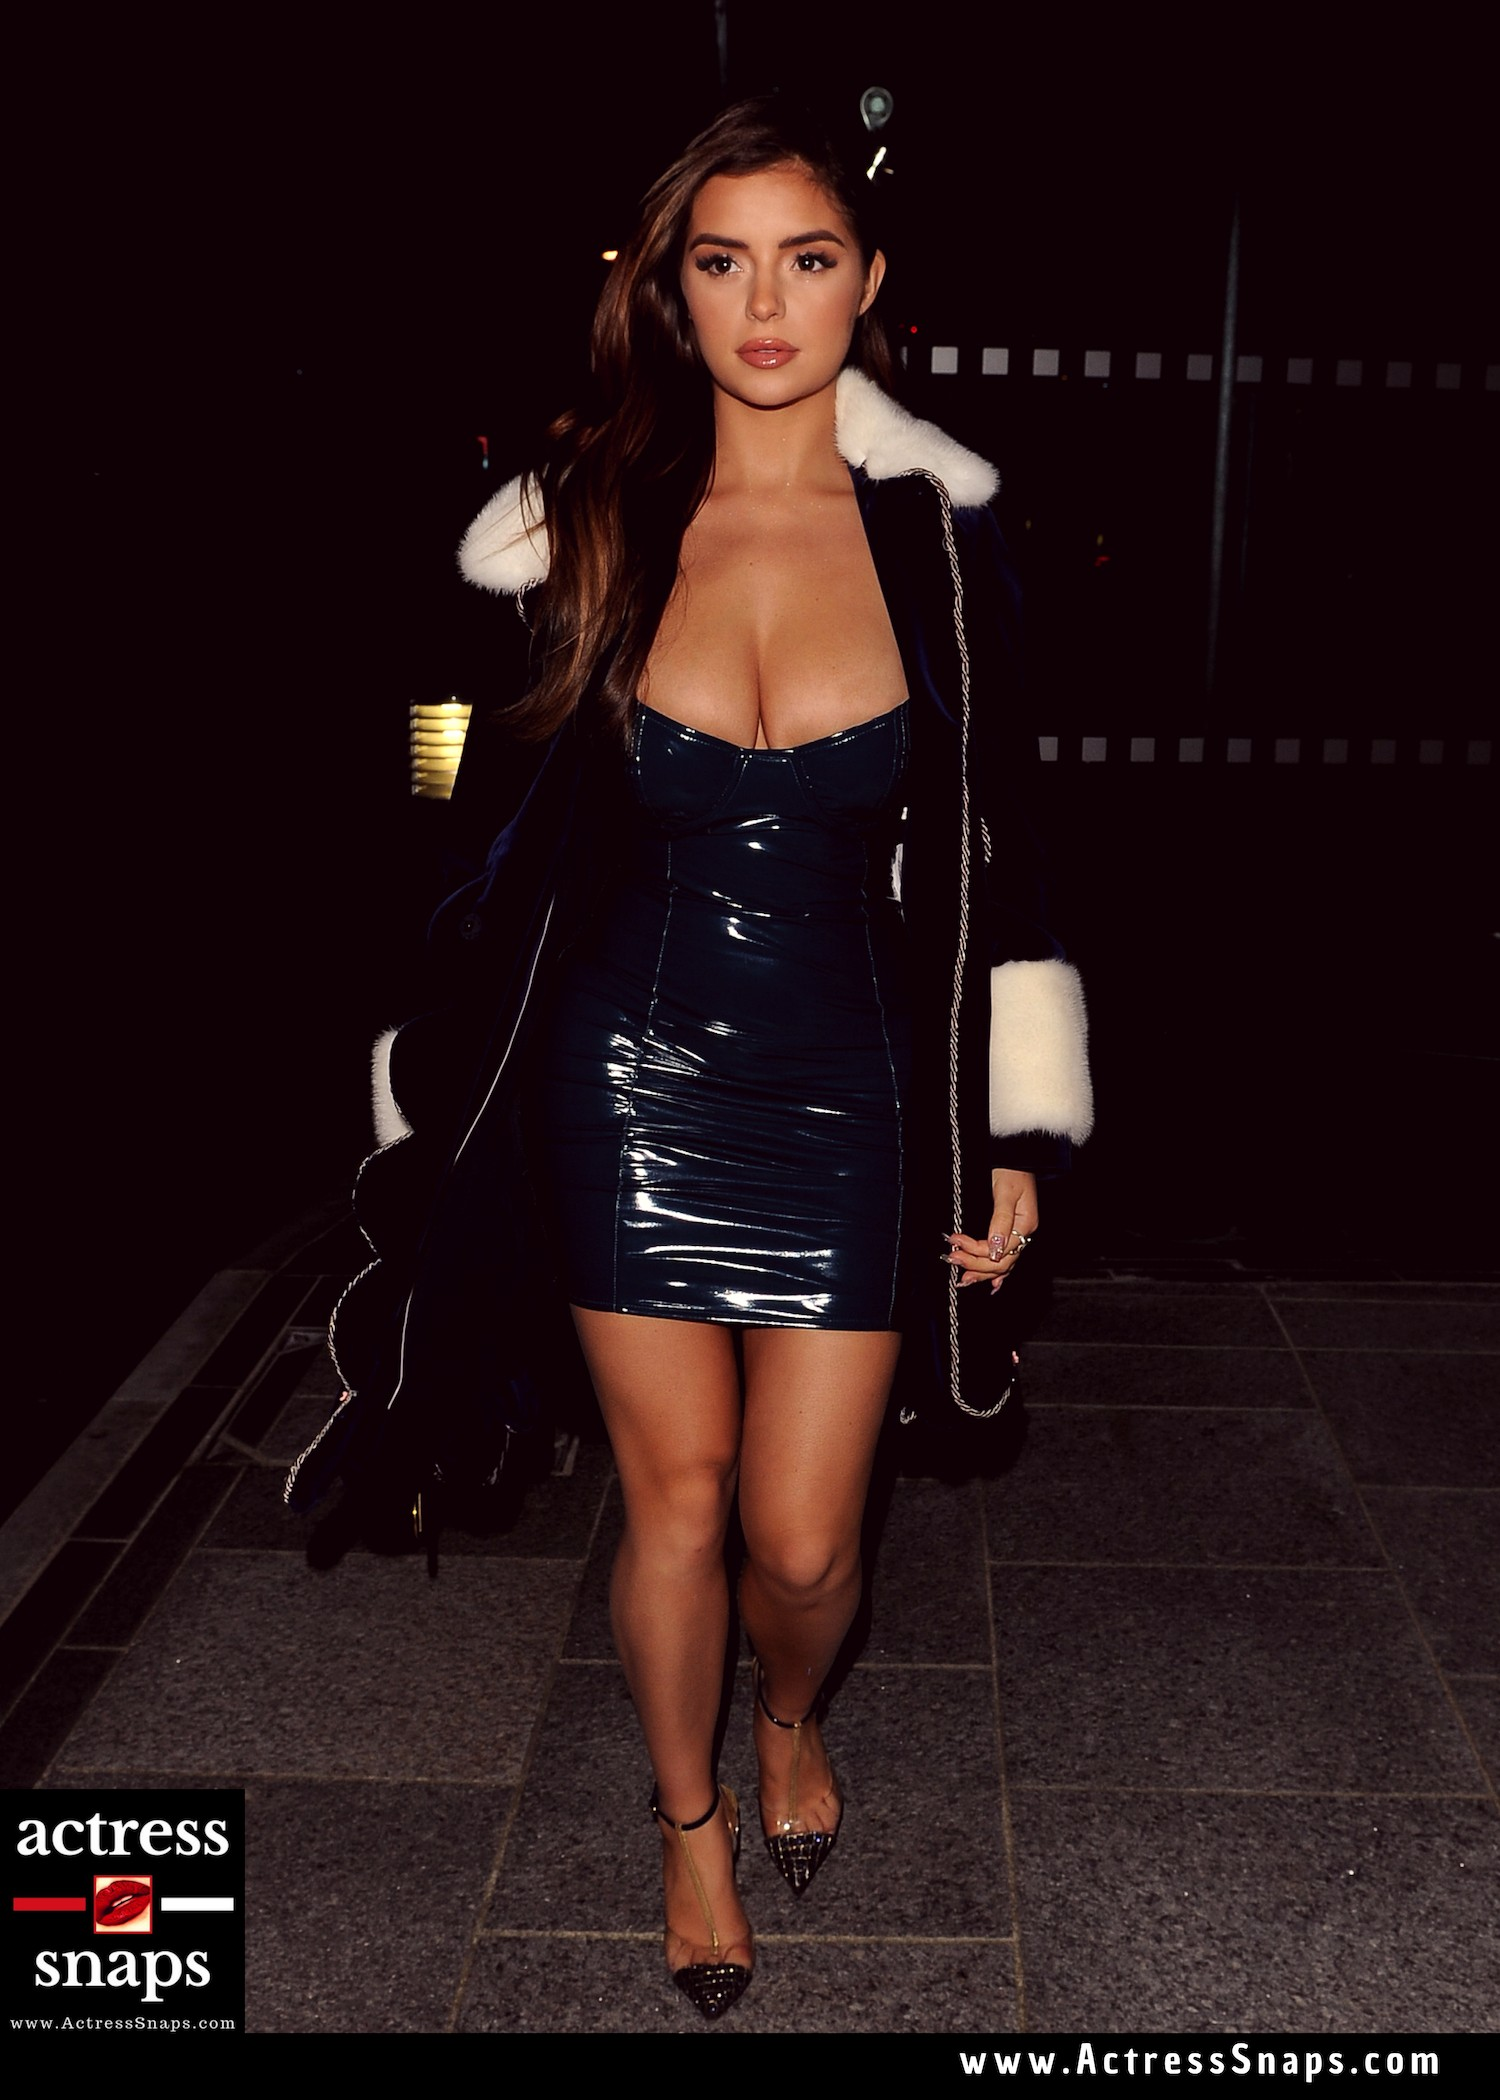 Demi Rose Mawby - Latest Pictures - Sexy Actress Pictures | Hot Actress Pictures - ActressSnaps.com